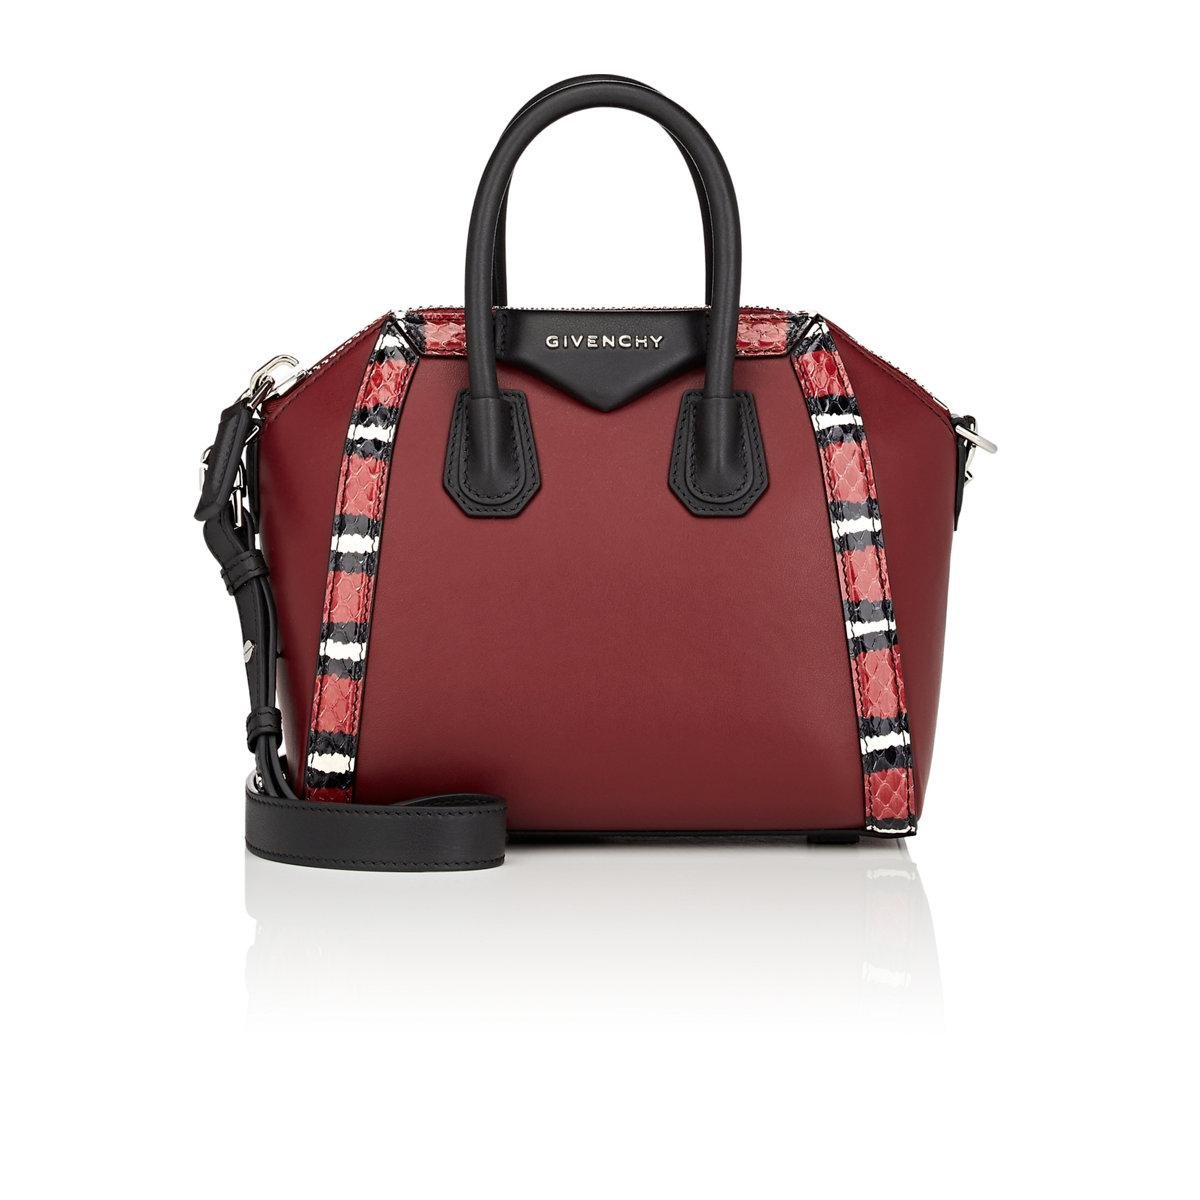 ad1619620e Lyst - Givenchy Antigona Mini Leather Duffel Bag in Red